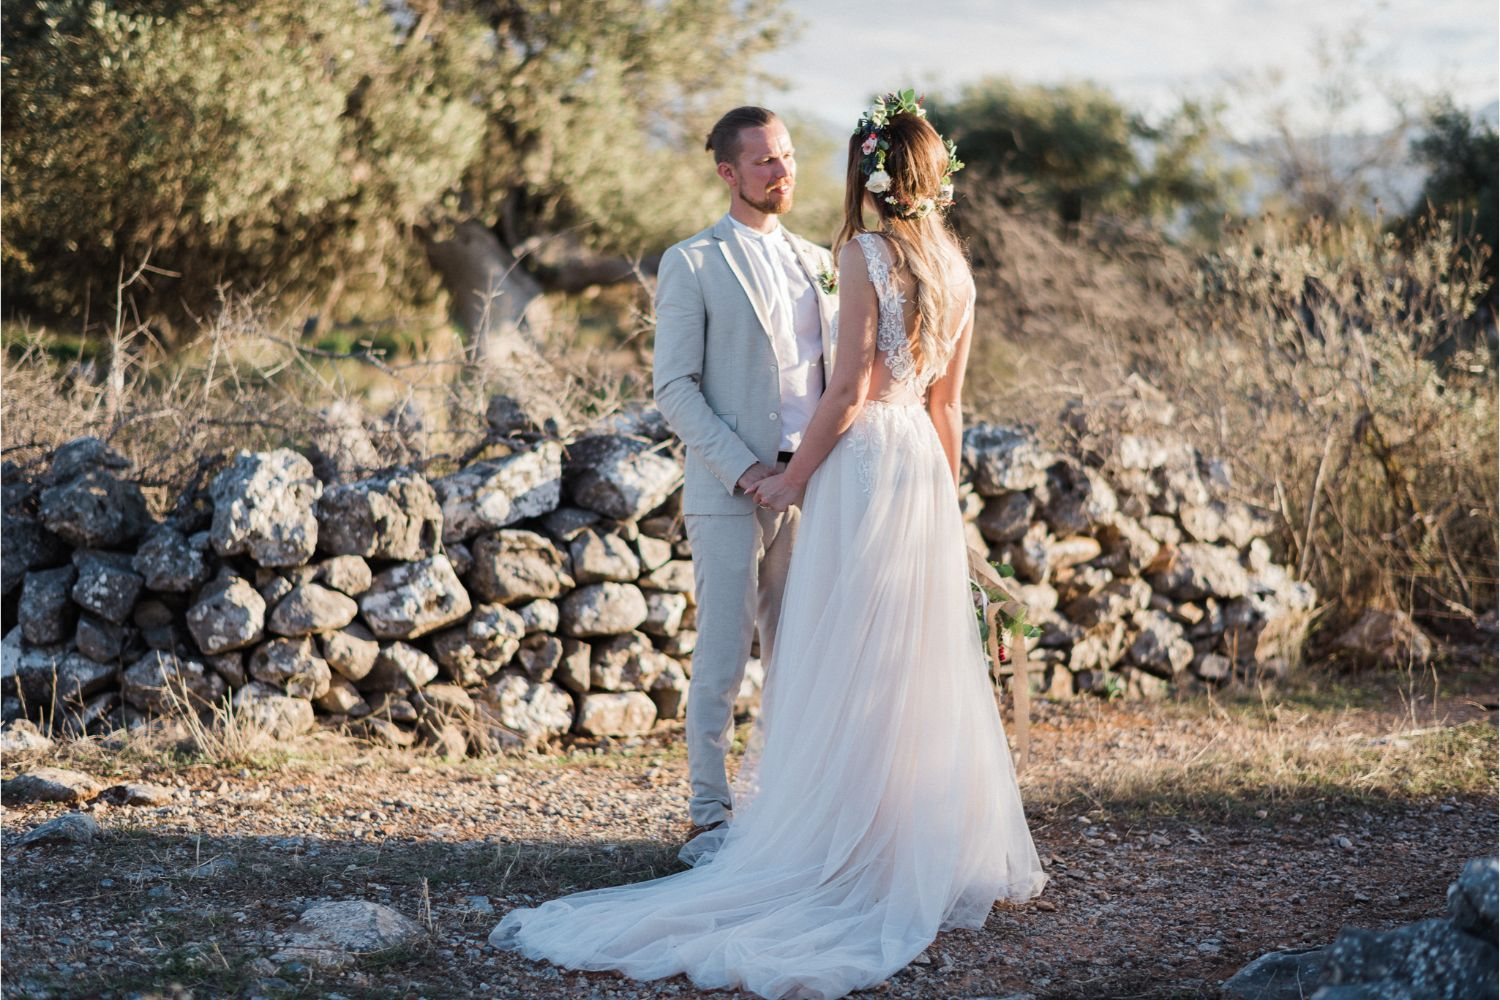 newlyweds photoshoot at villa wedding in Crete